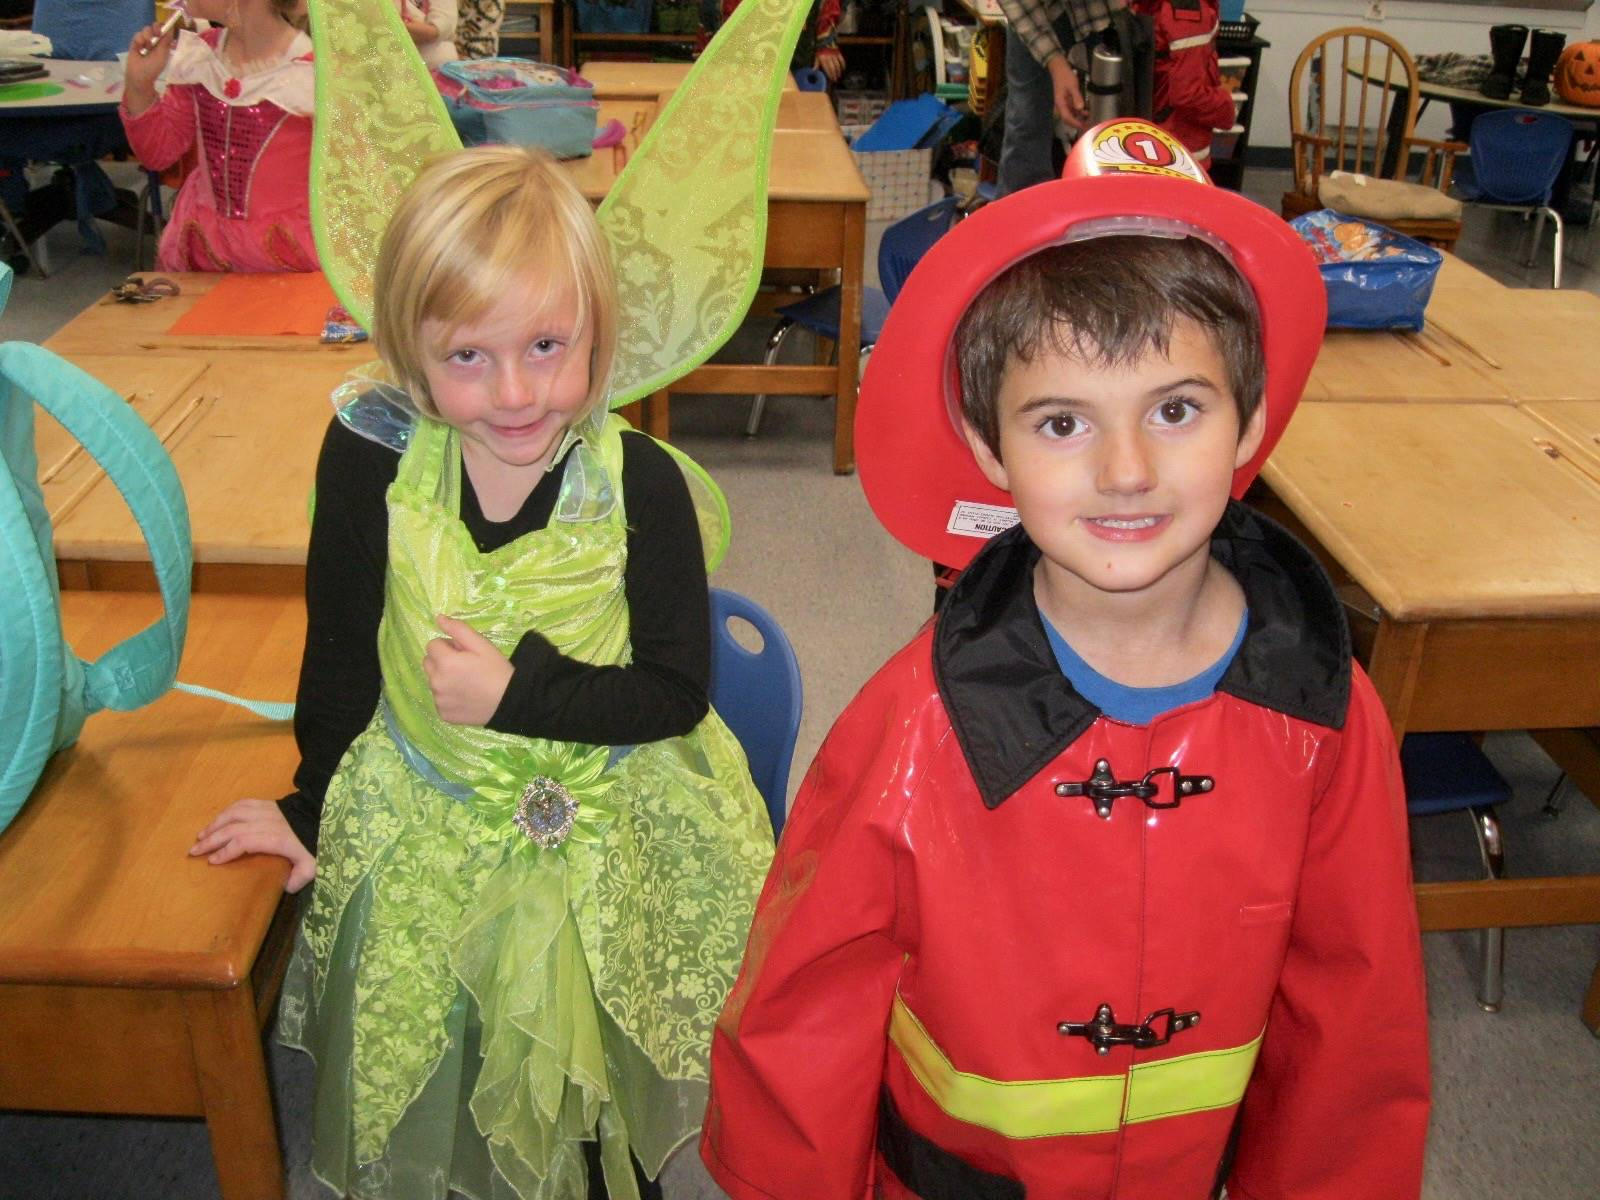 Tinker bell and a firefighter.